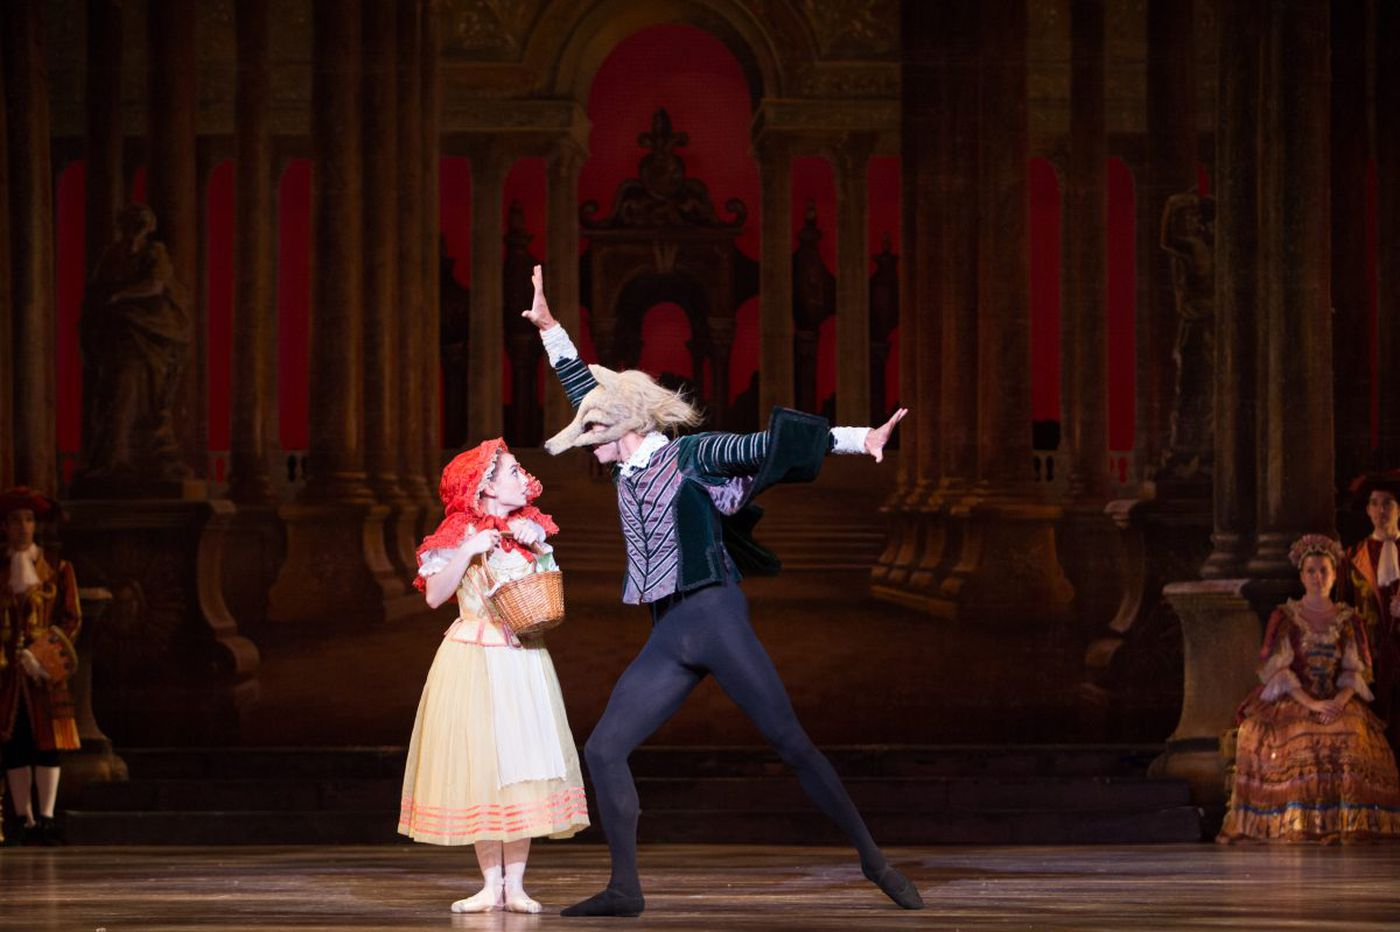 Dancers, what dancers? Our classical music critic weighs in on The Sleeping Beauty's music